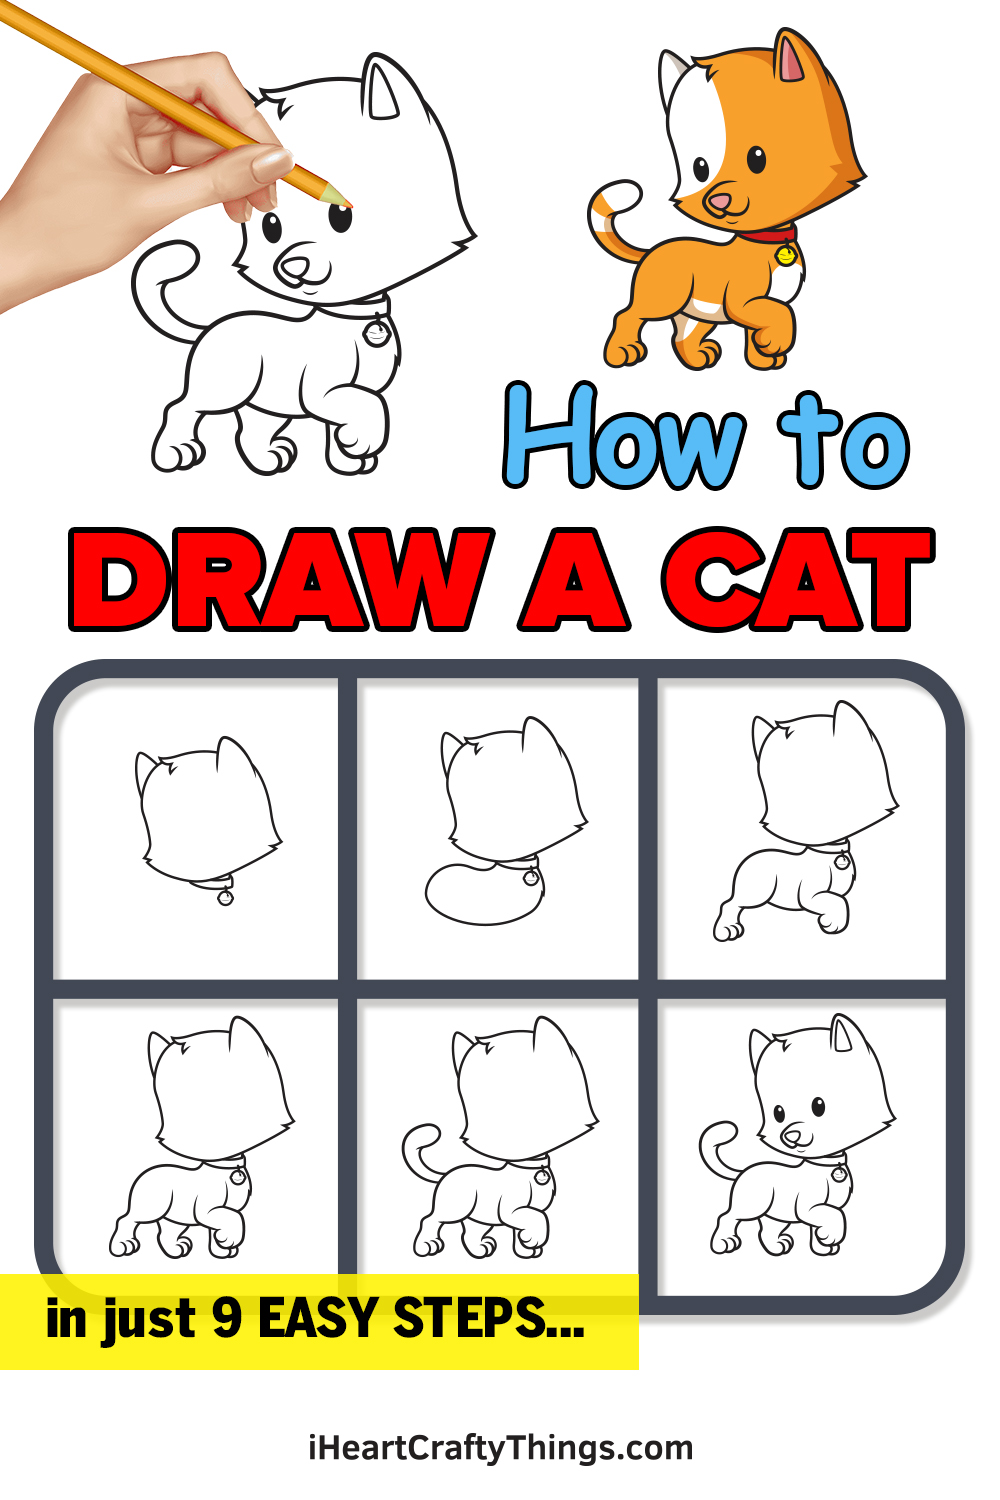 how to draw a cat in 9 easy steps